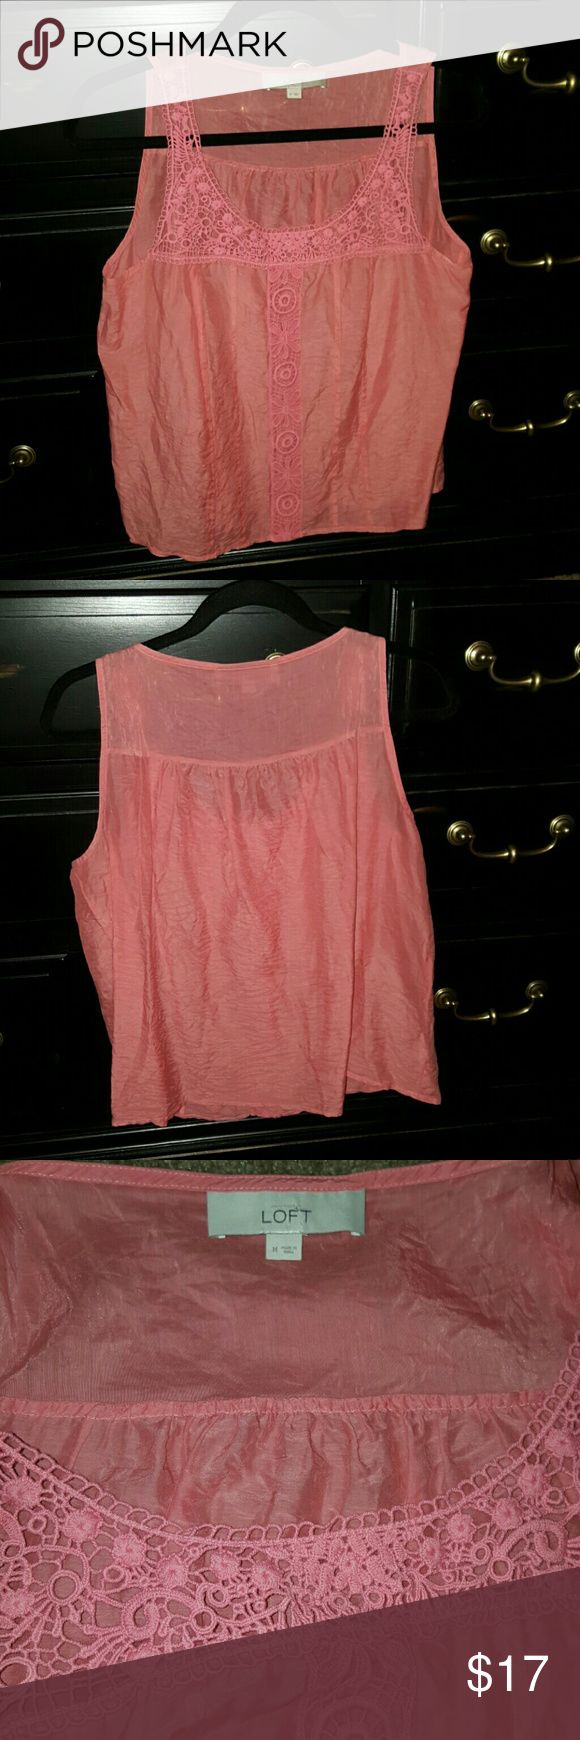 Anne taylor loft pink crochet top Anne Taylor LOFT tank top Light pink with crochet details Size medium LOFT Tops Blouses